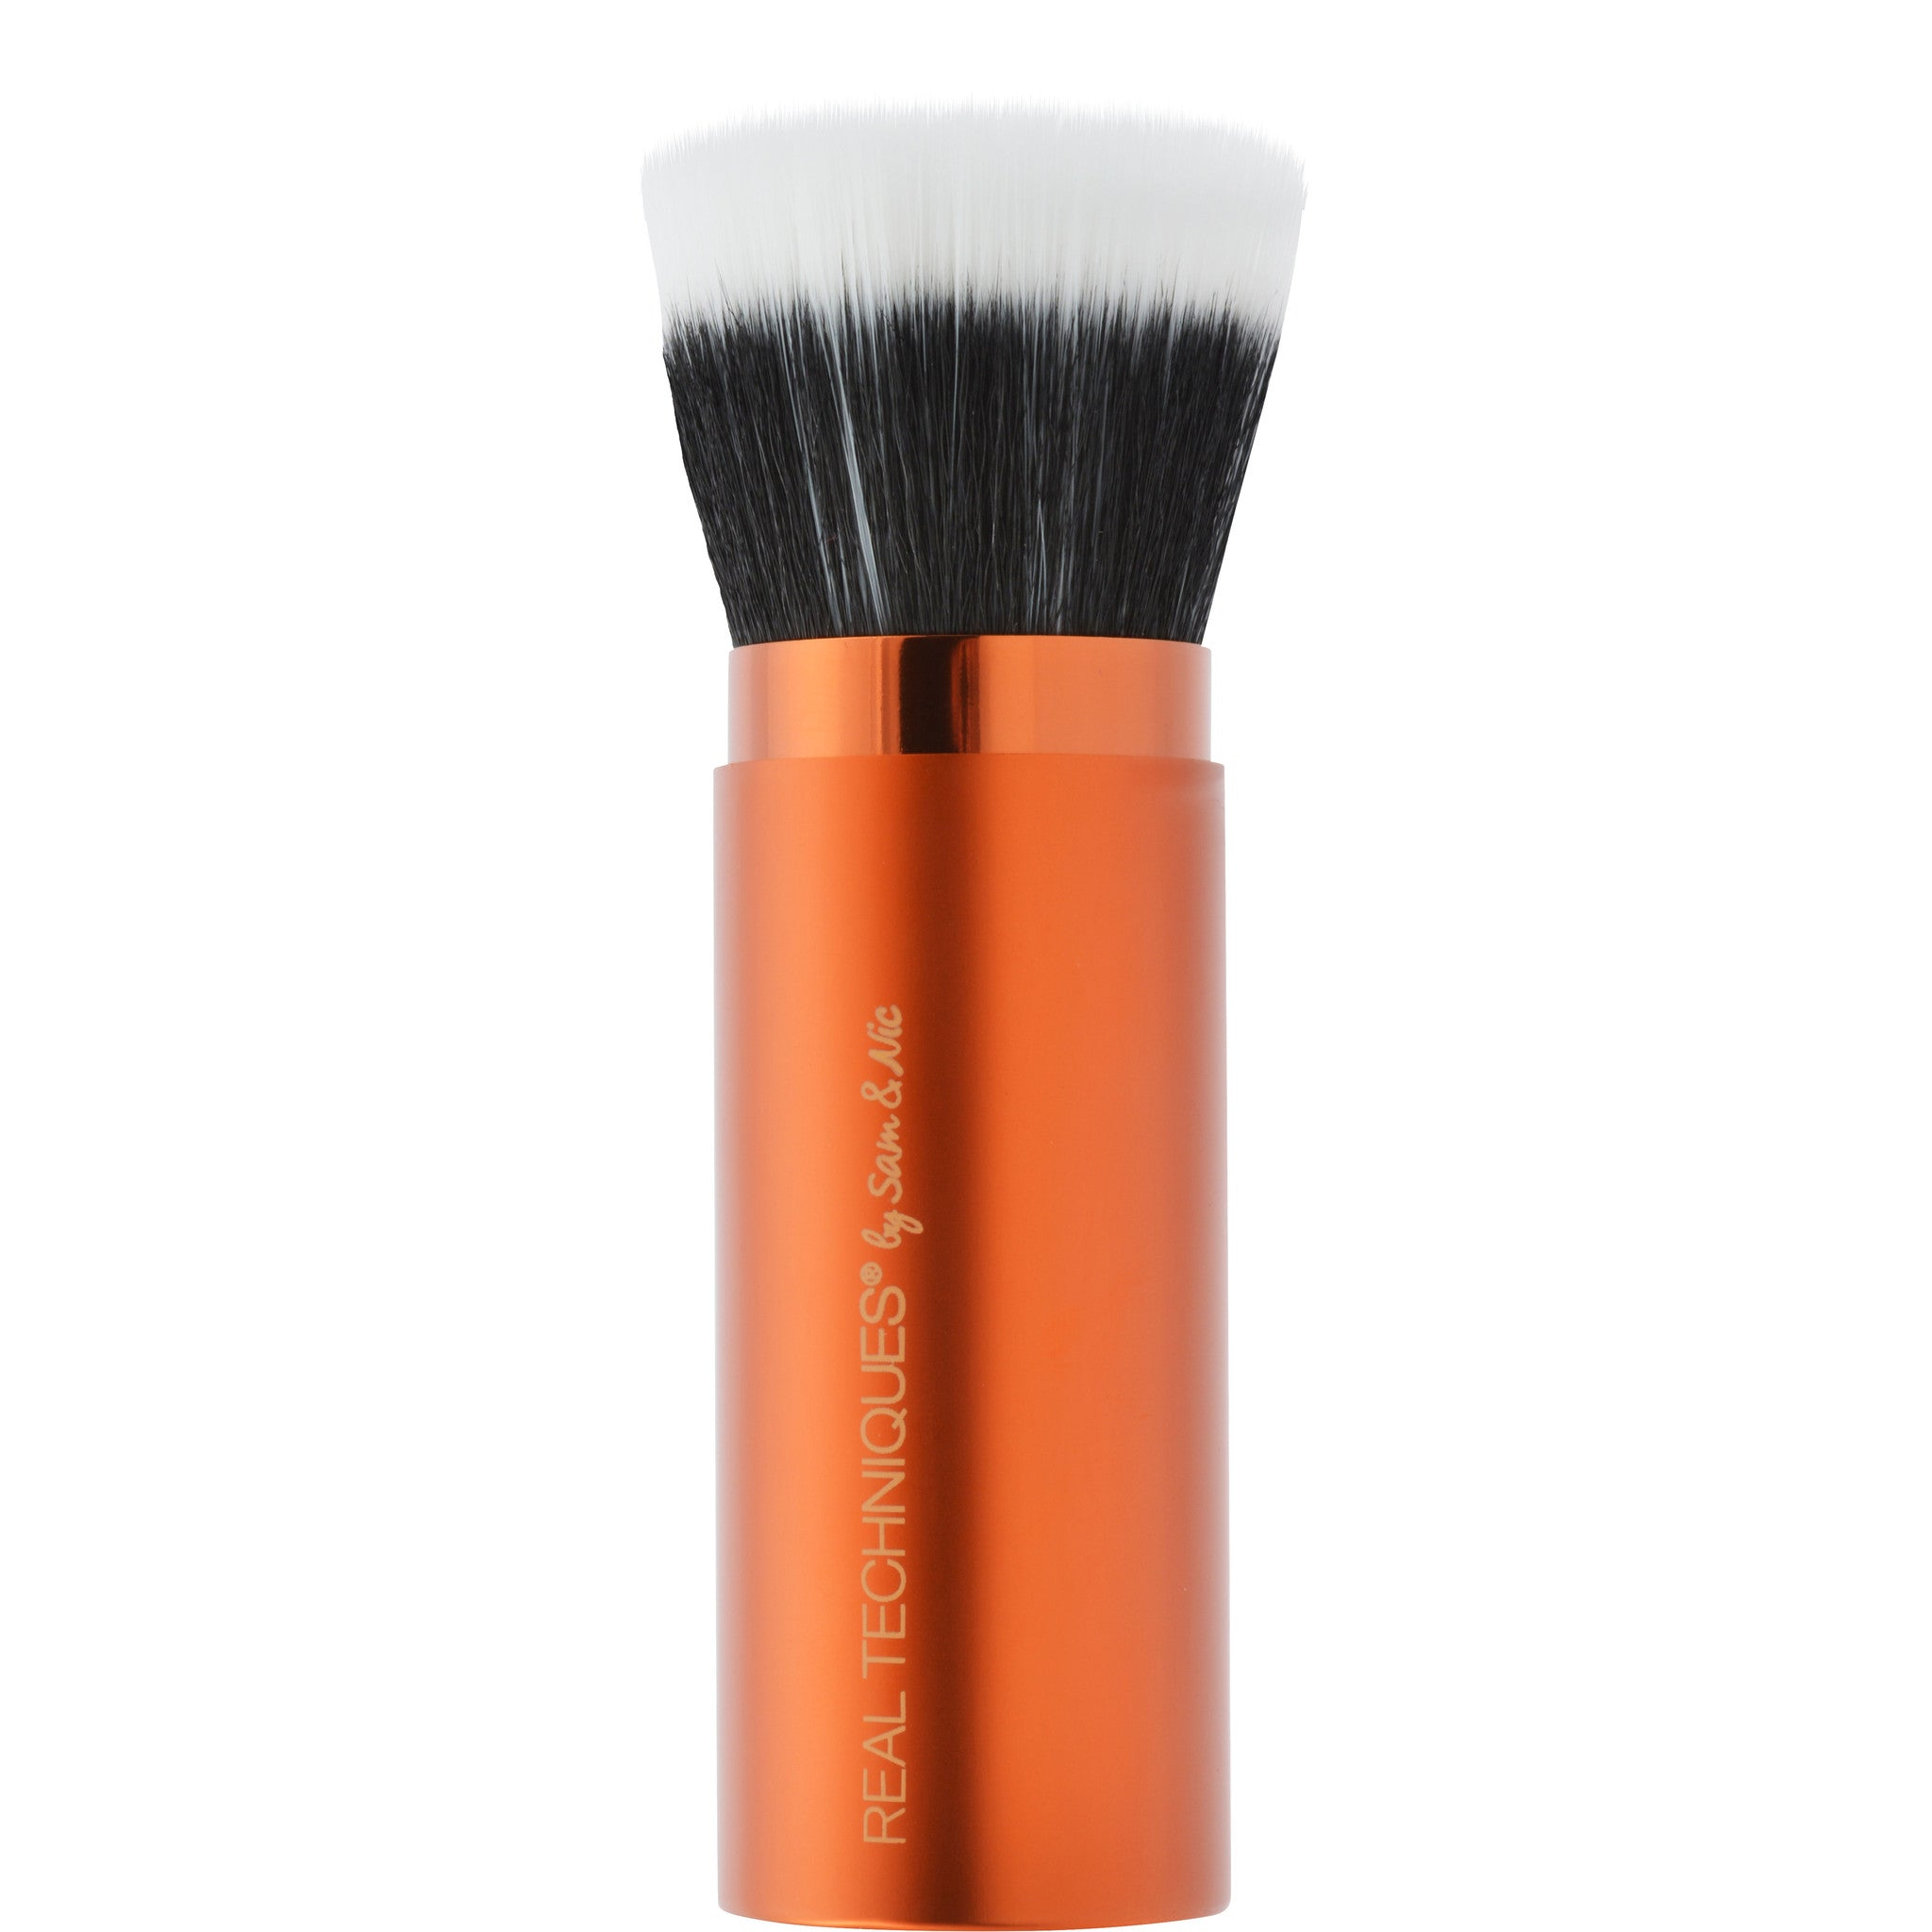 Real Techniques Retractable Bronzer Brush Loveby Beauty Store 1407 Blush